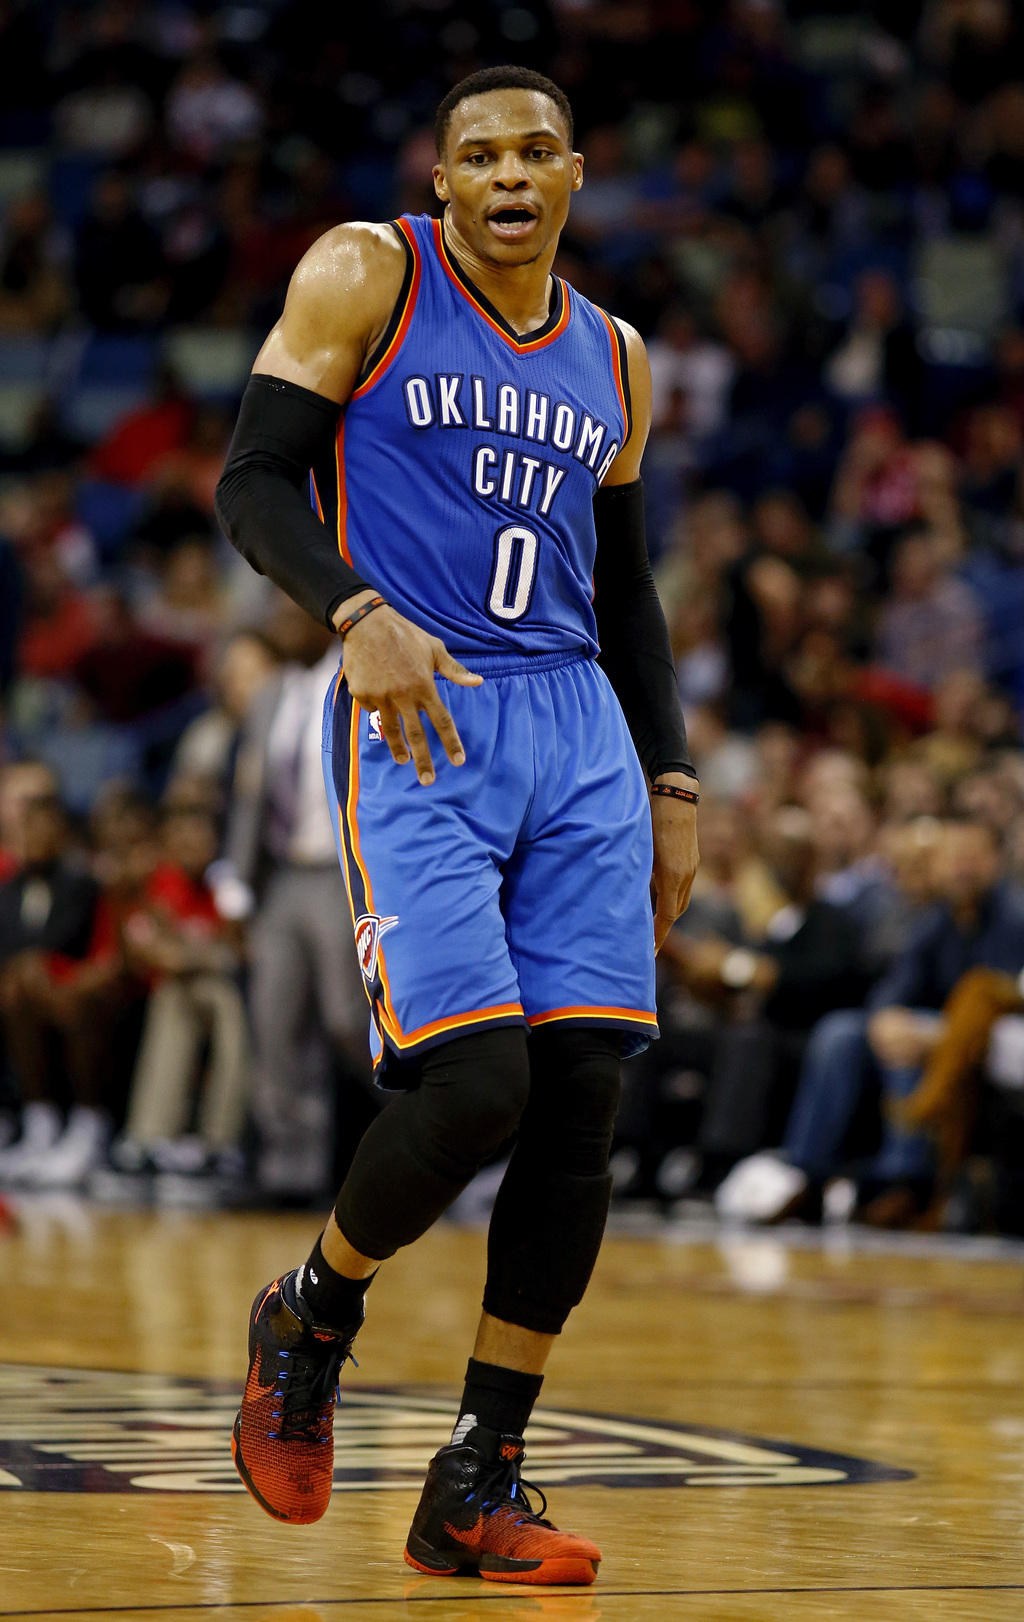 Oklahoma City Thunder guard Russell Westbrook dances between plays during the second half of the team's NBA basketball game against the...